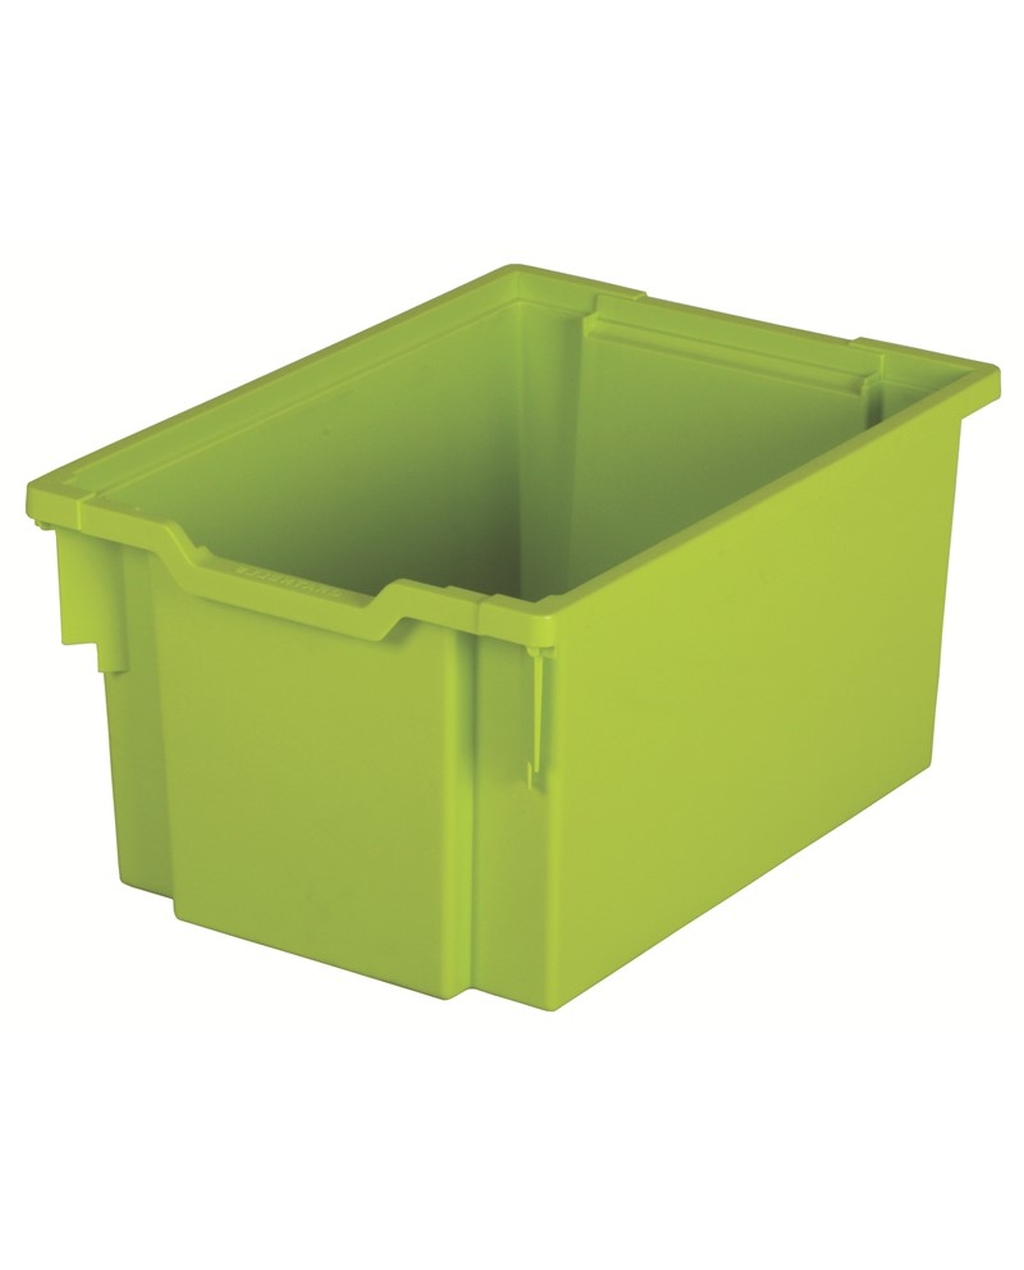 Gratnells Extra Deep Tray - Lime Green